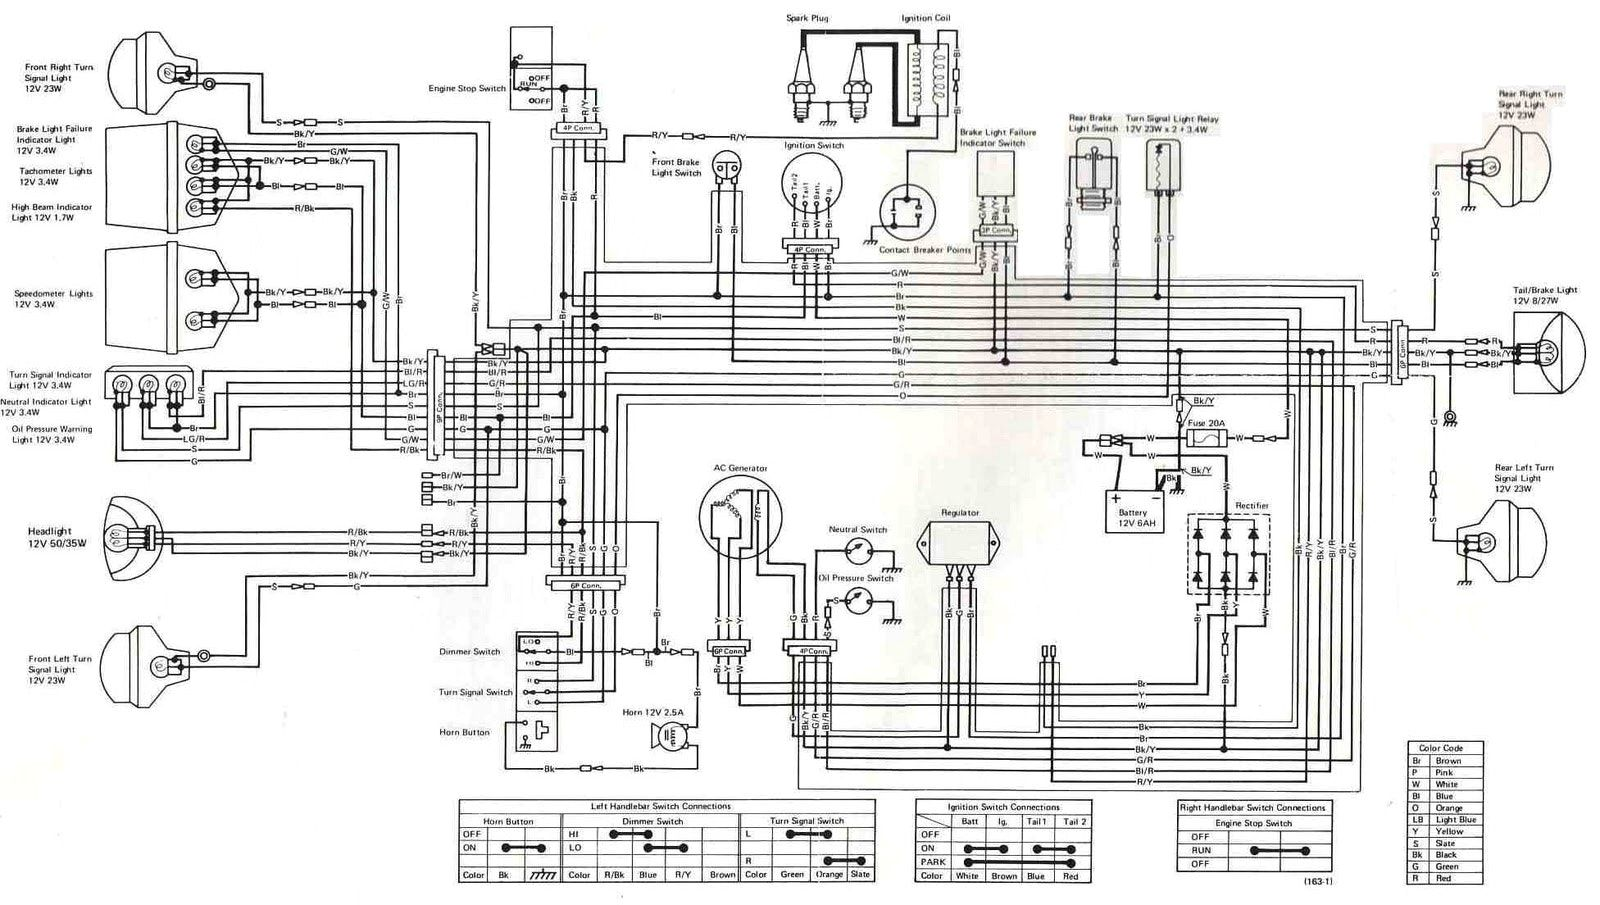 Kawasaki Mule 610 Wiring Diagram Kz400 1975 Electrical